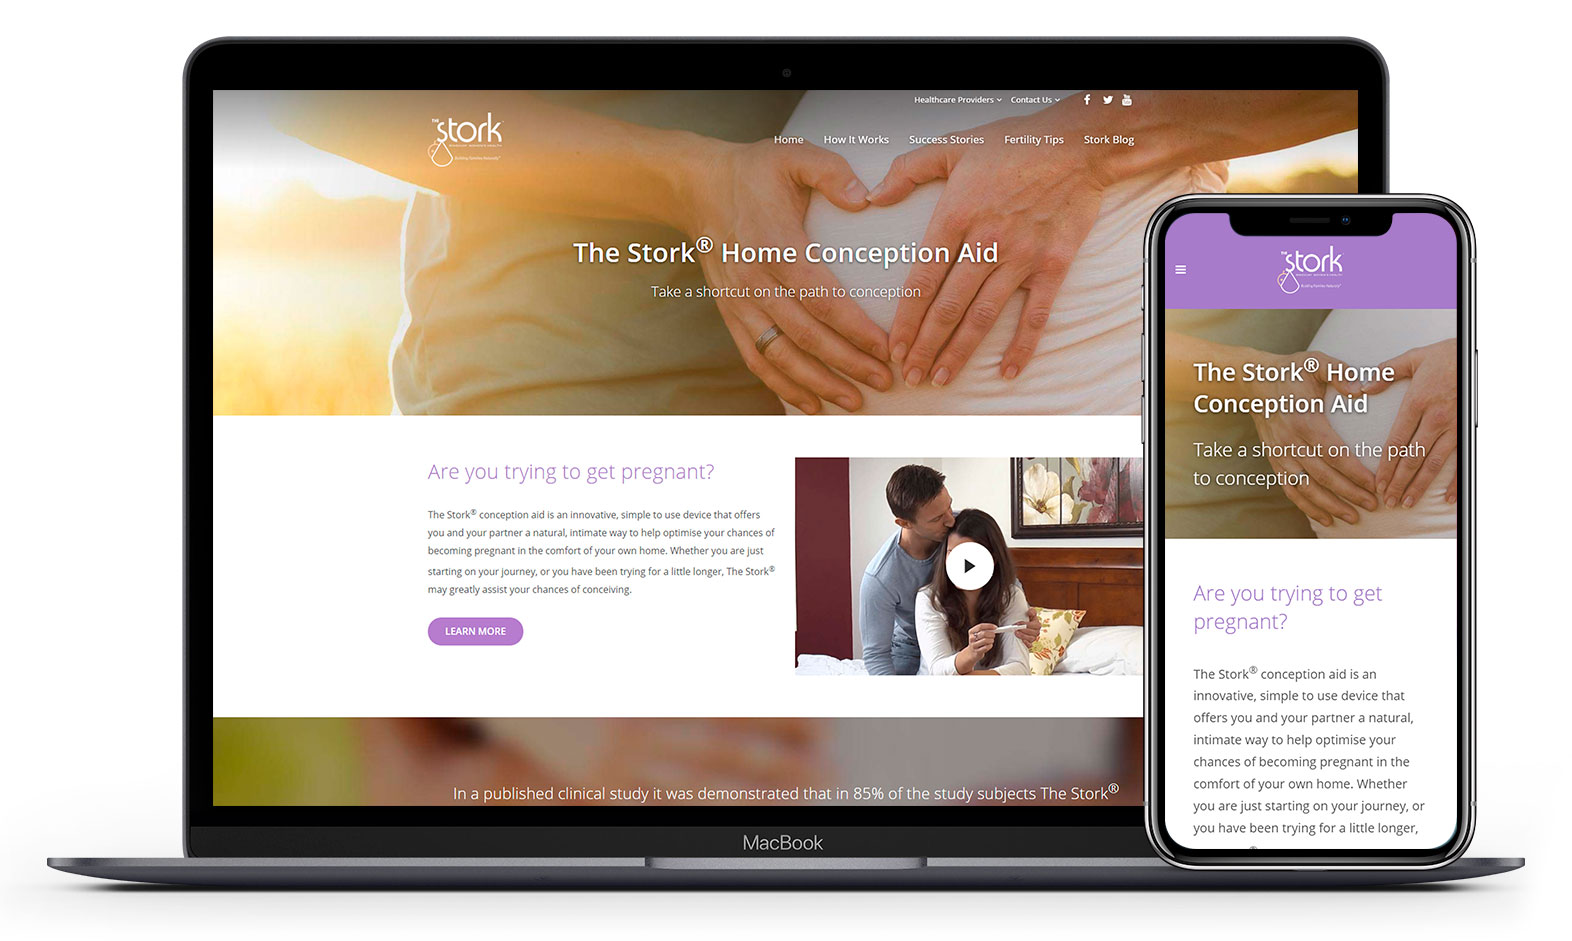 Stork Contraception Aid's website design displayed responsive devices